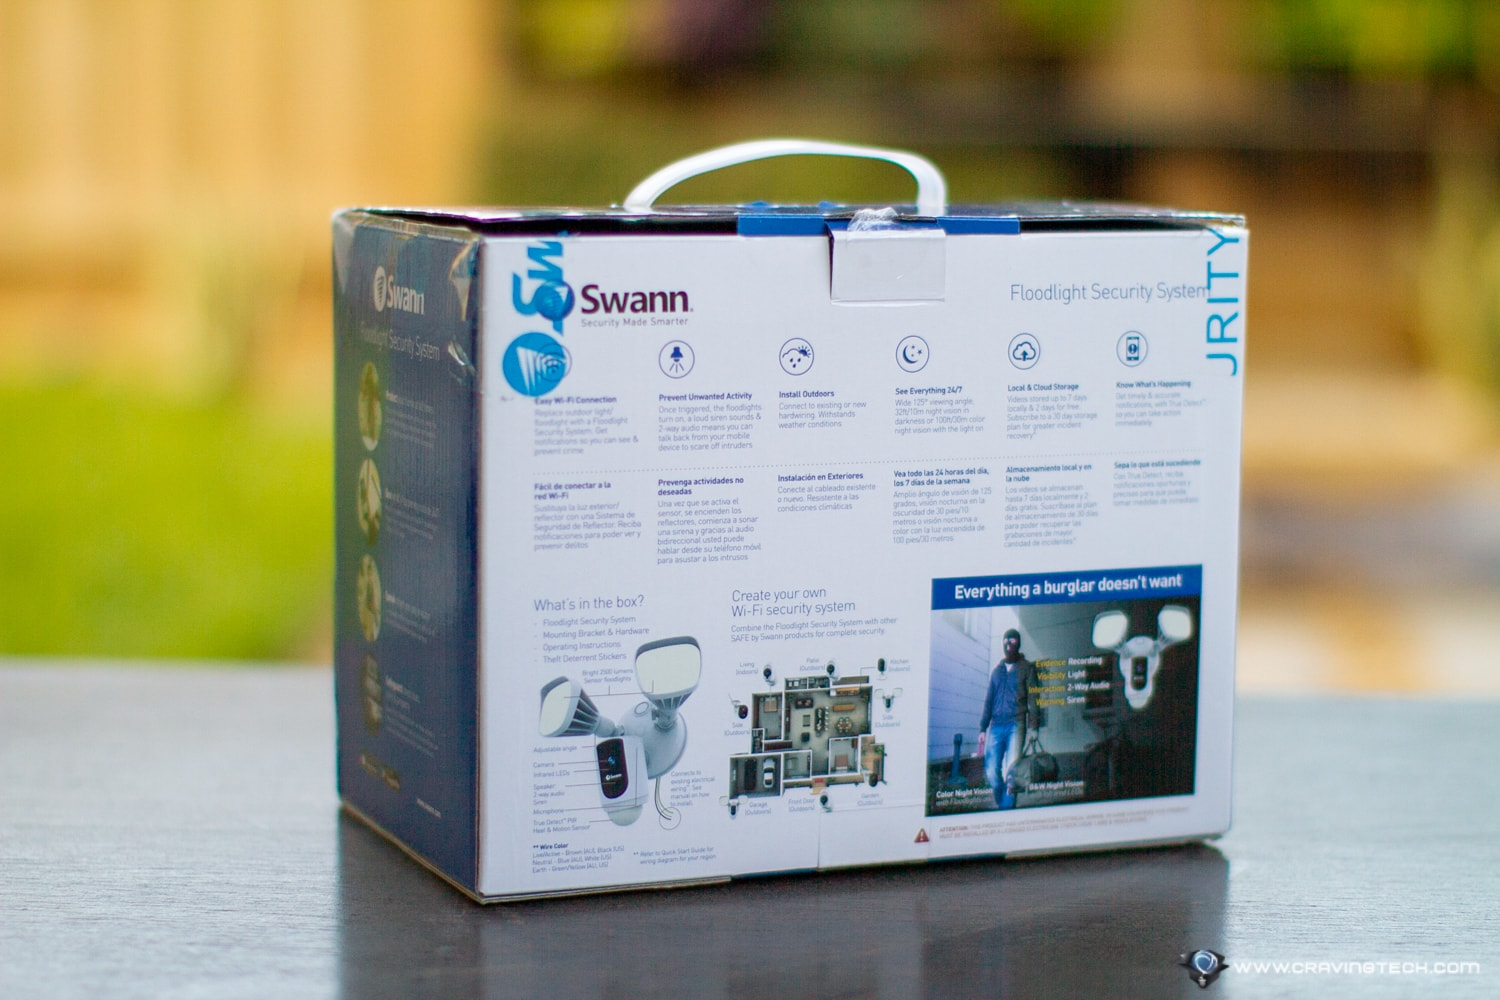 Swann Floodlight Security Camera Packaging Contents